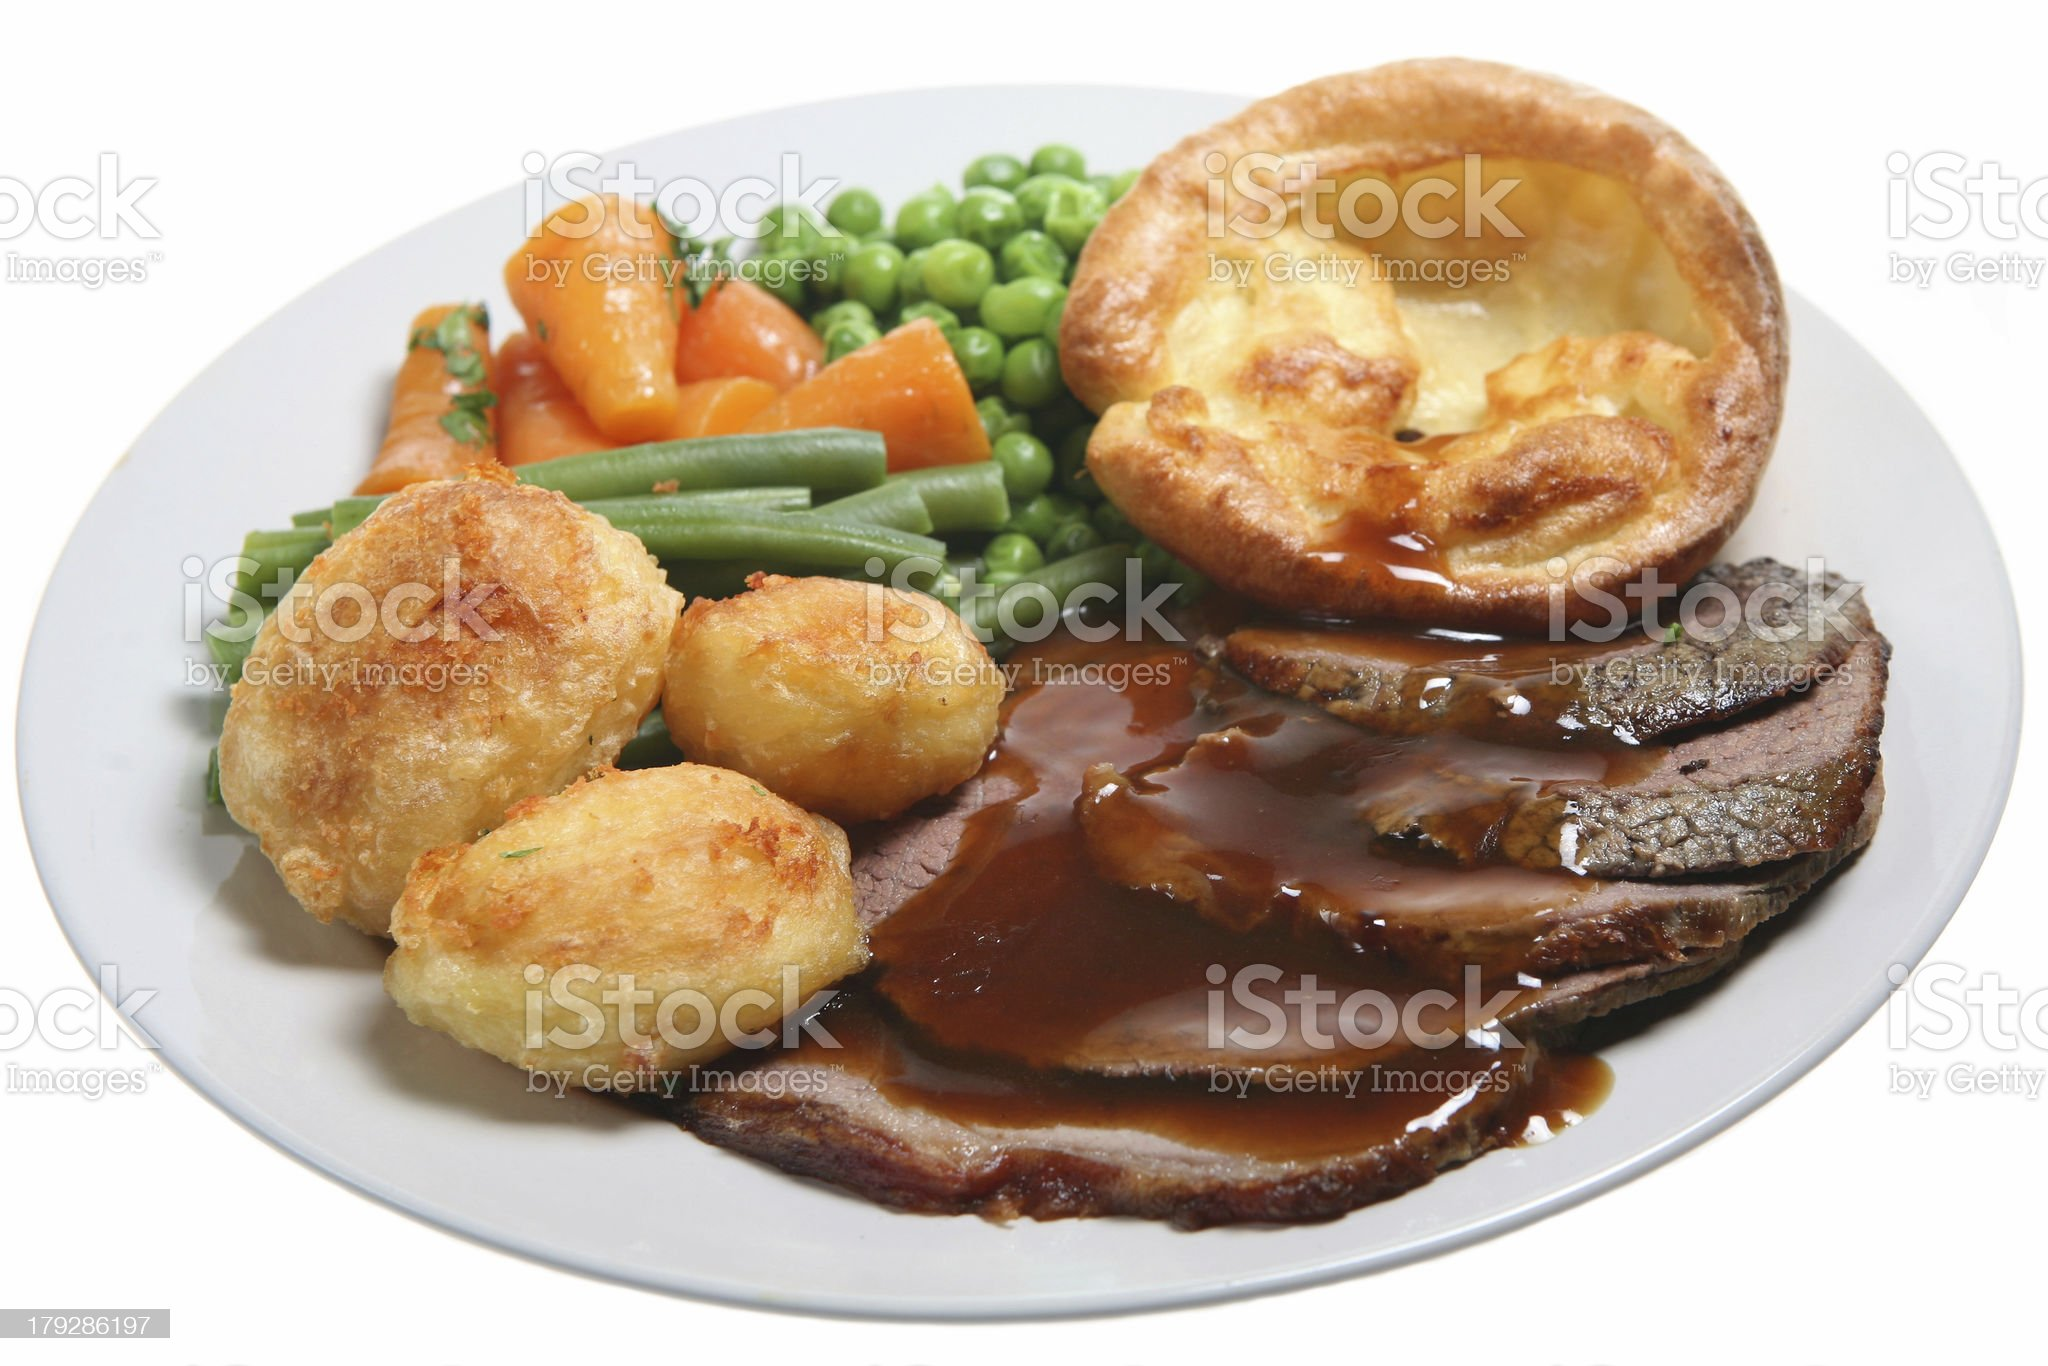 Close up photo of a roast beef, potatoes and veggies dinner royalty-free stock photo